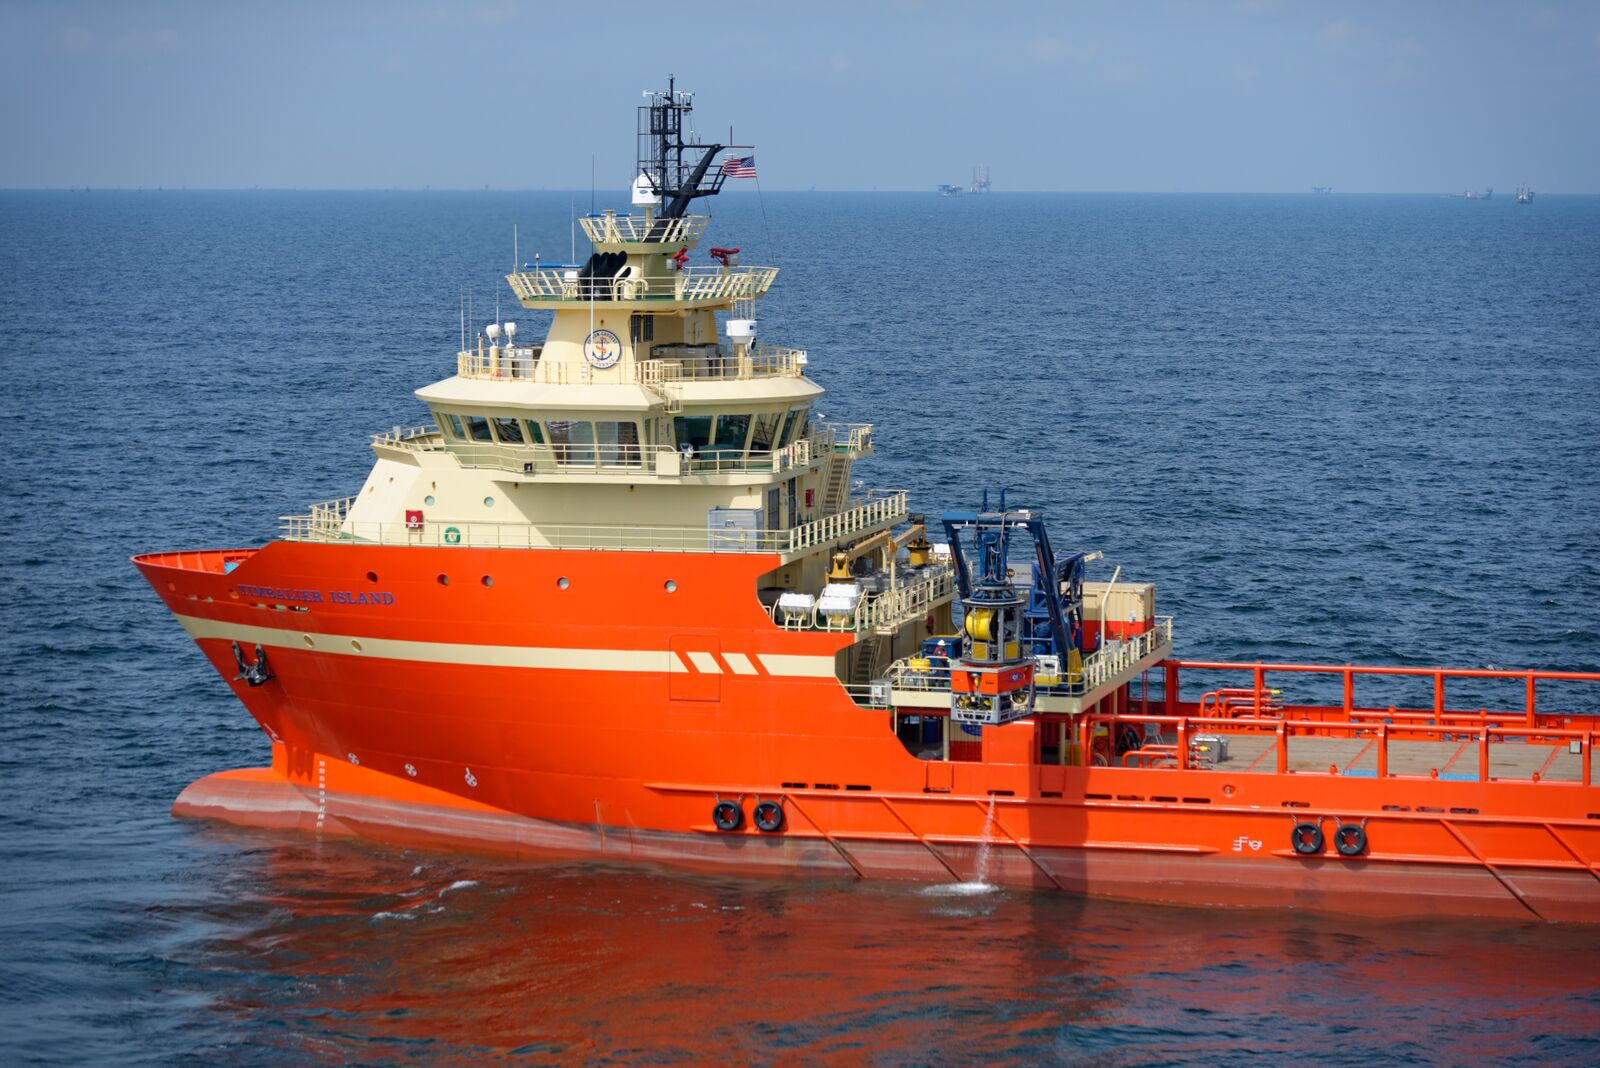 C-Innovation Announces New Three-year Subsea Construction Contract with BP